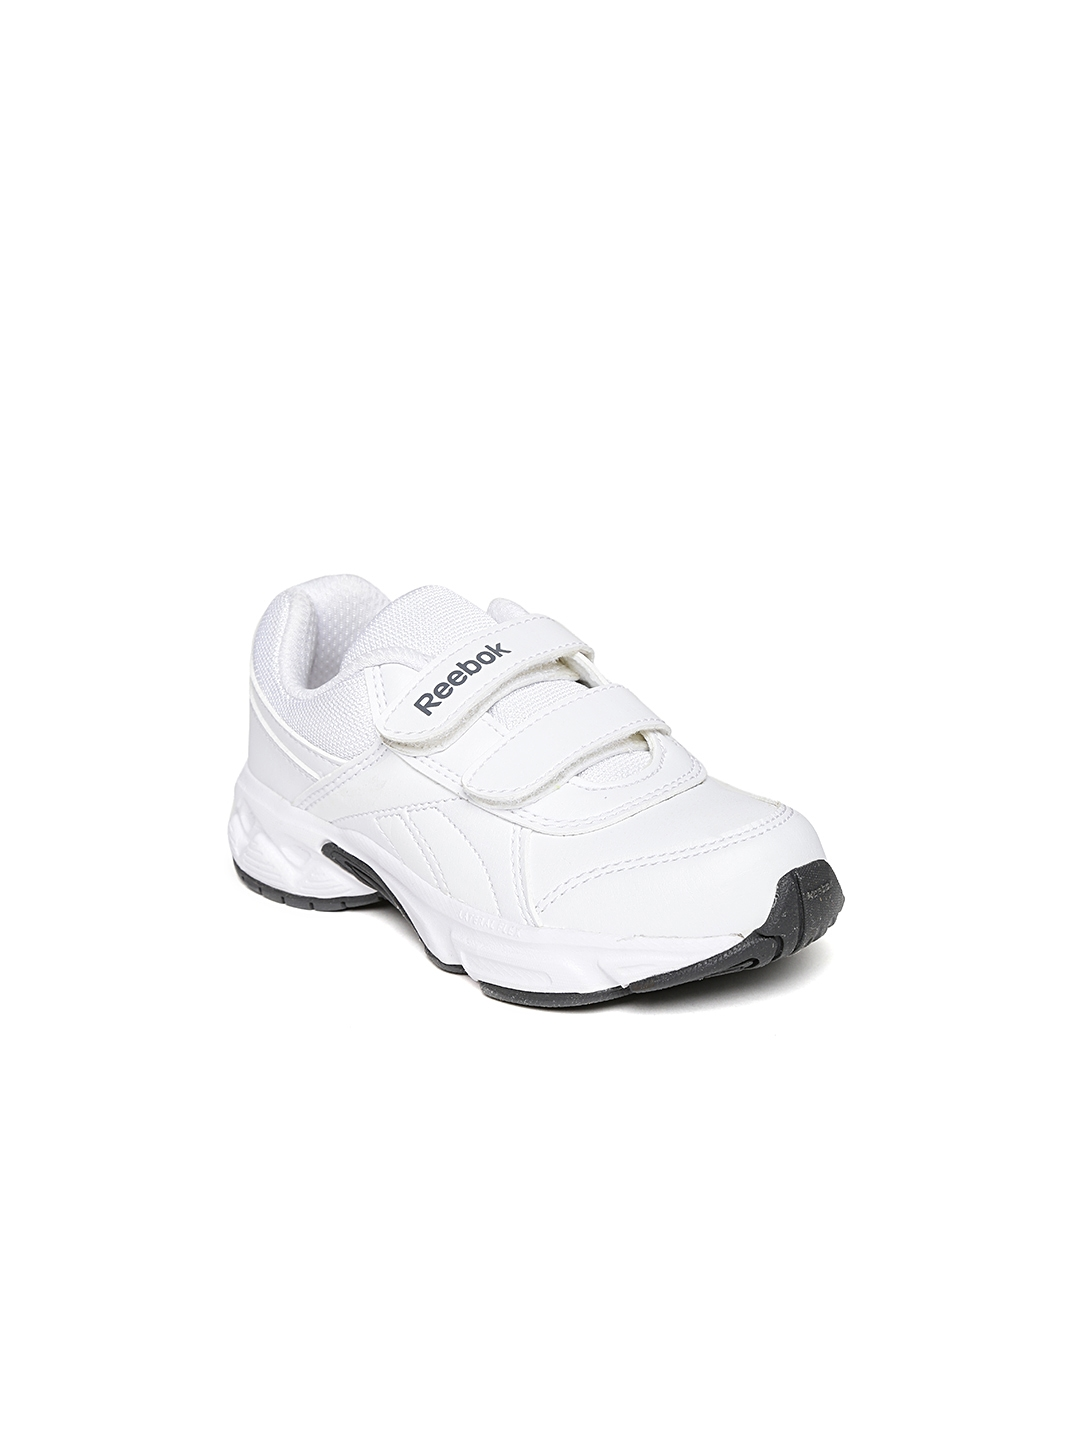 Buy Reebok Kids White School LP Running Shoes - Sports Shoes for ... 3d148eee1379